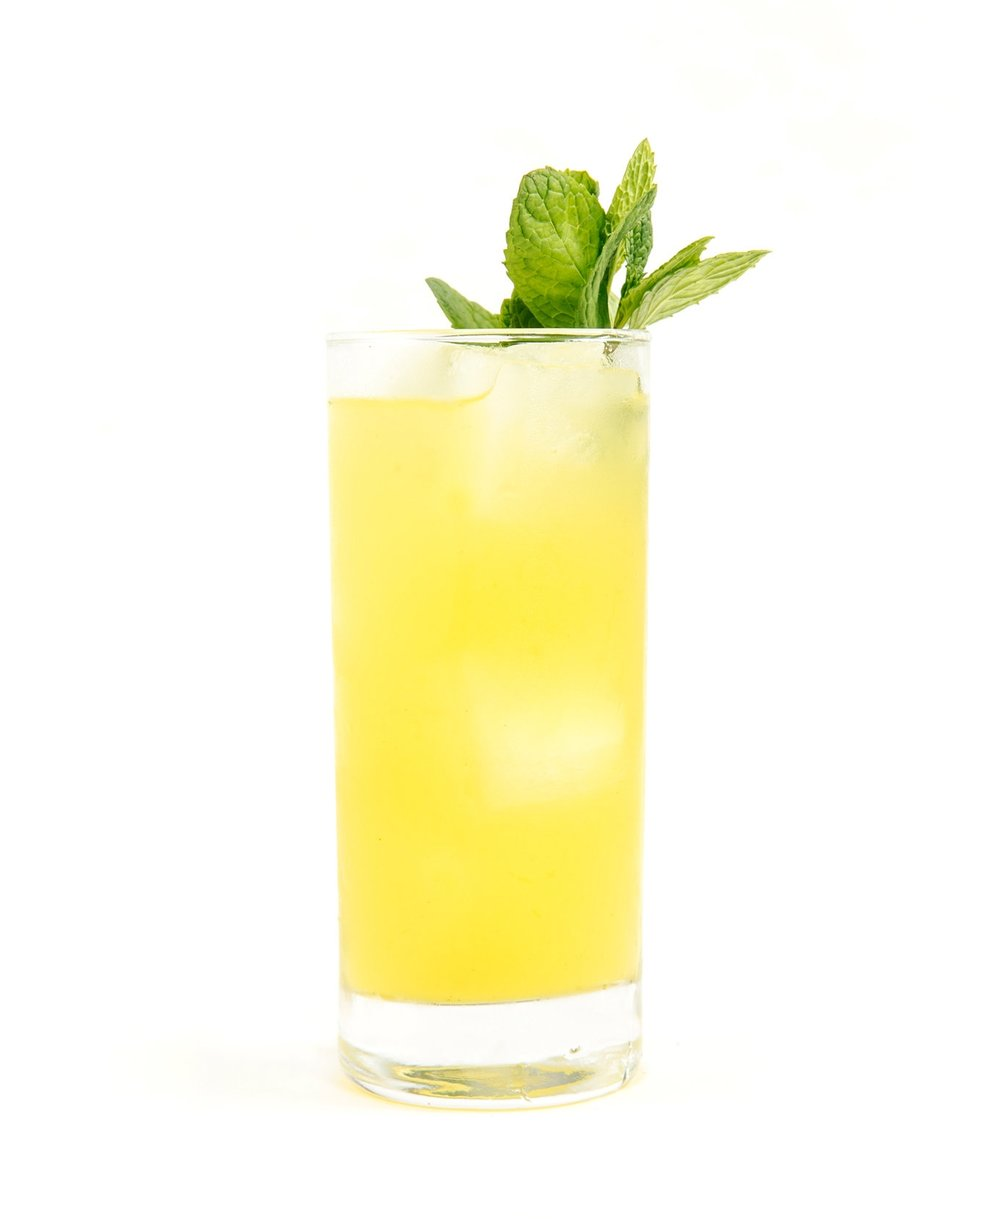 SPRING FLING - 2 oz gin or vodka3/4 oz nostrum pineapple turmeric ginger shrub3/4 oz fresh lime juice2-4 oz tonic waterdirections: build over ice and top with tonic.